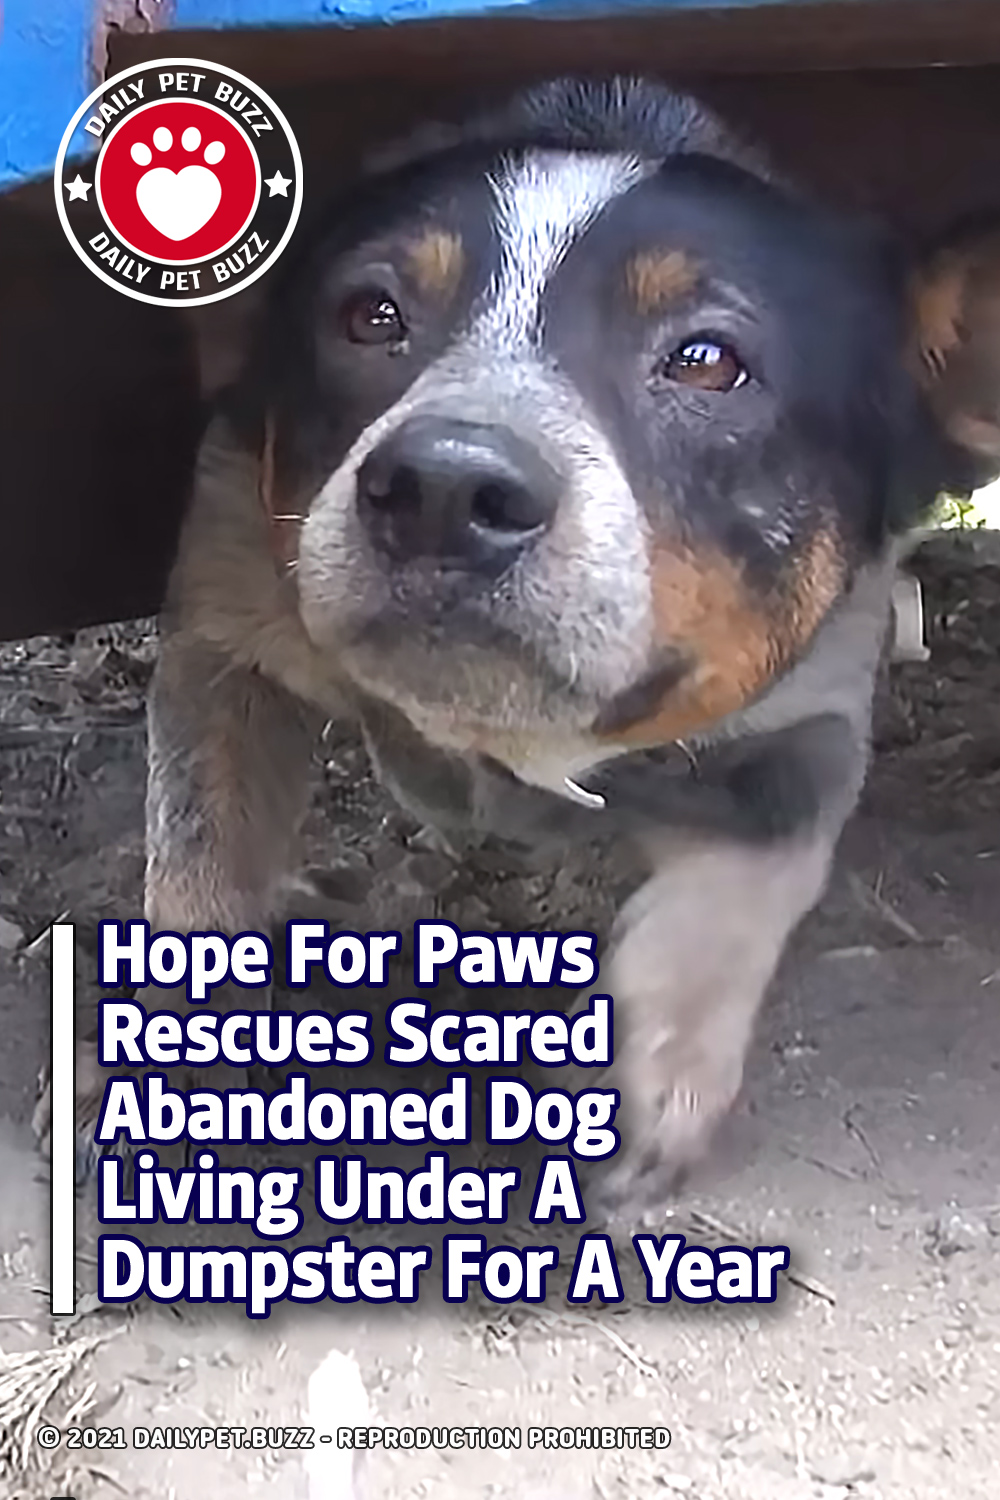 Hope For Paws Rescues Scared Abandoned Dog Living Under A Dumpster For A Year